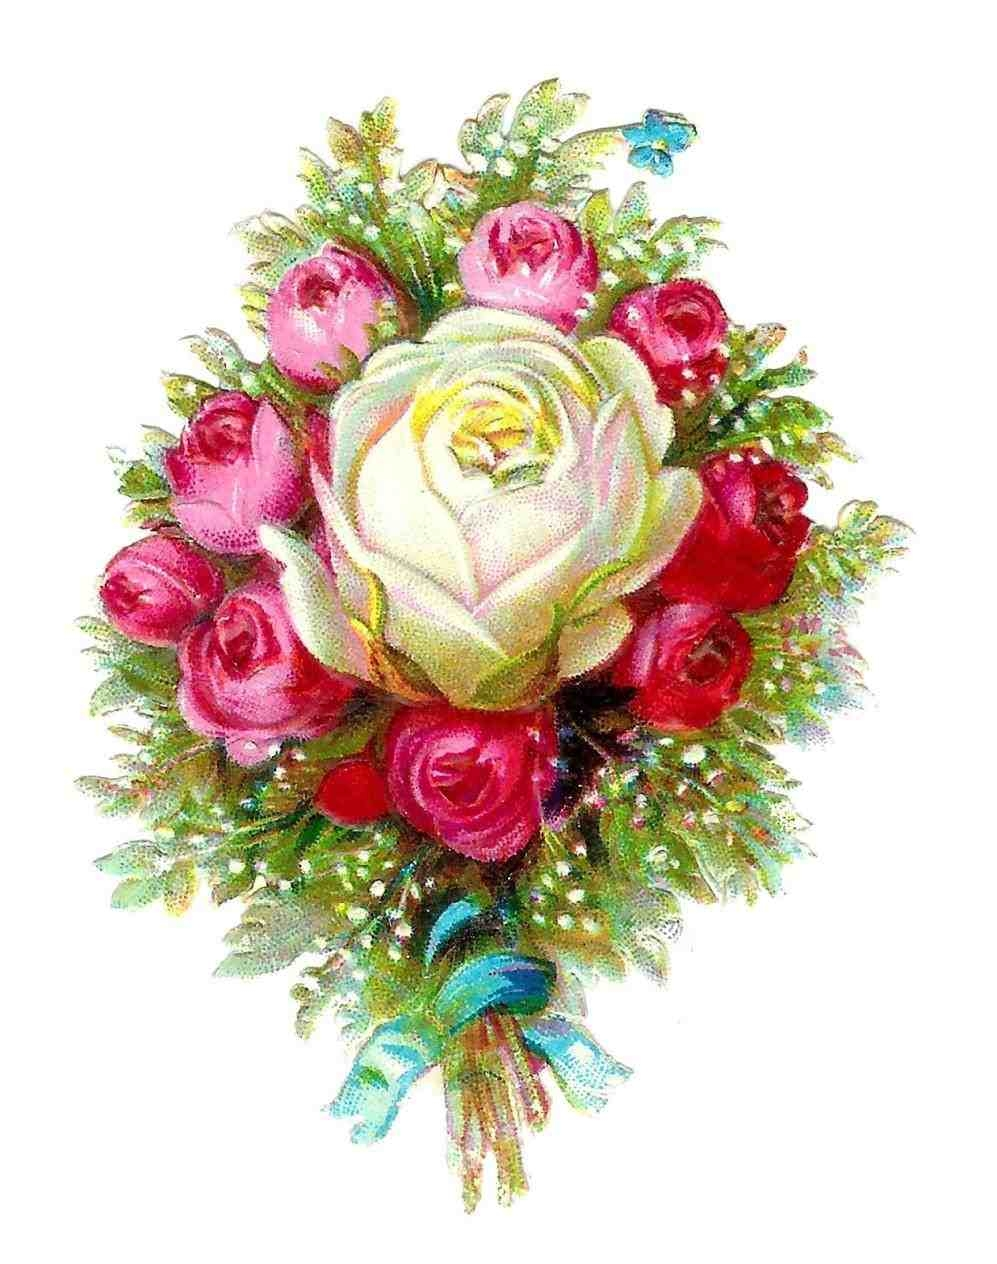 Bouquet of flowers clipart no background.